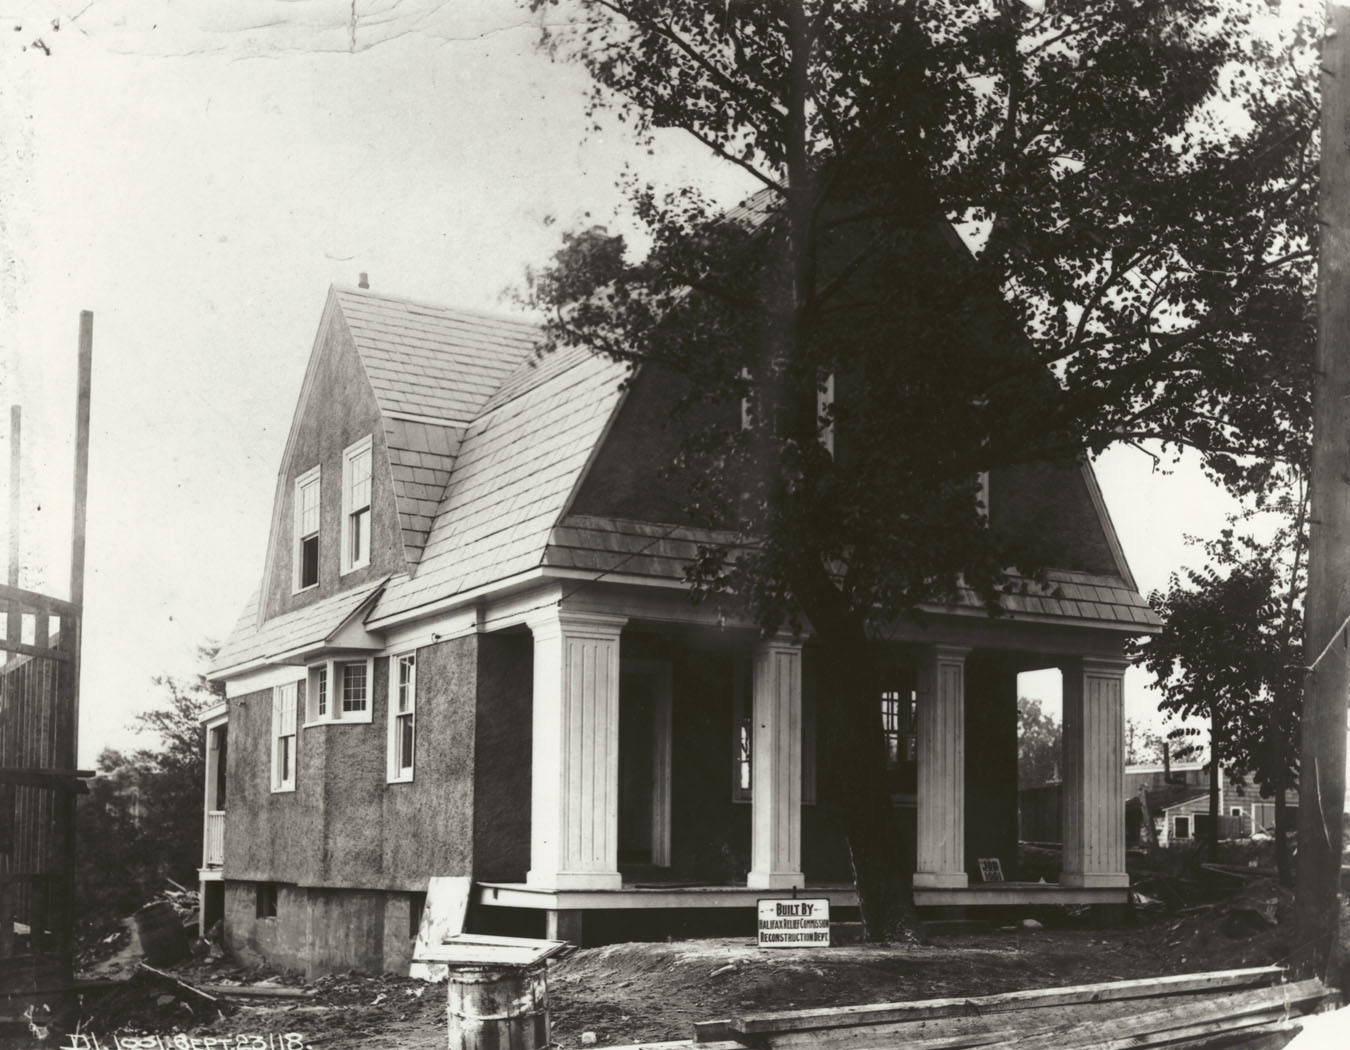 House under construction, 58 Young Street, Halifax, job 1001, built by Halifax Relief Commission, Reconstruction Department